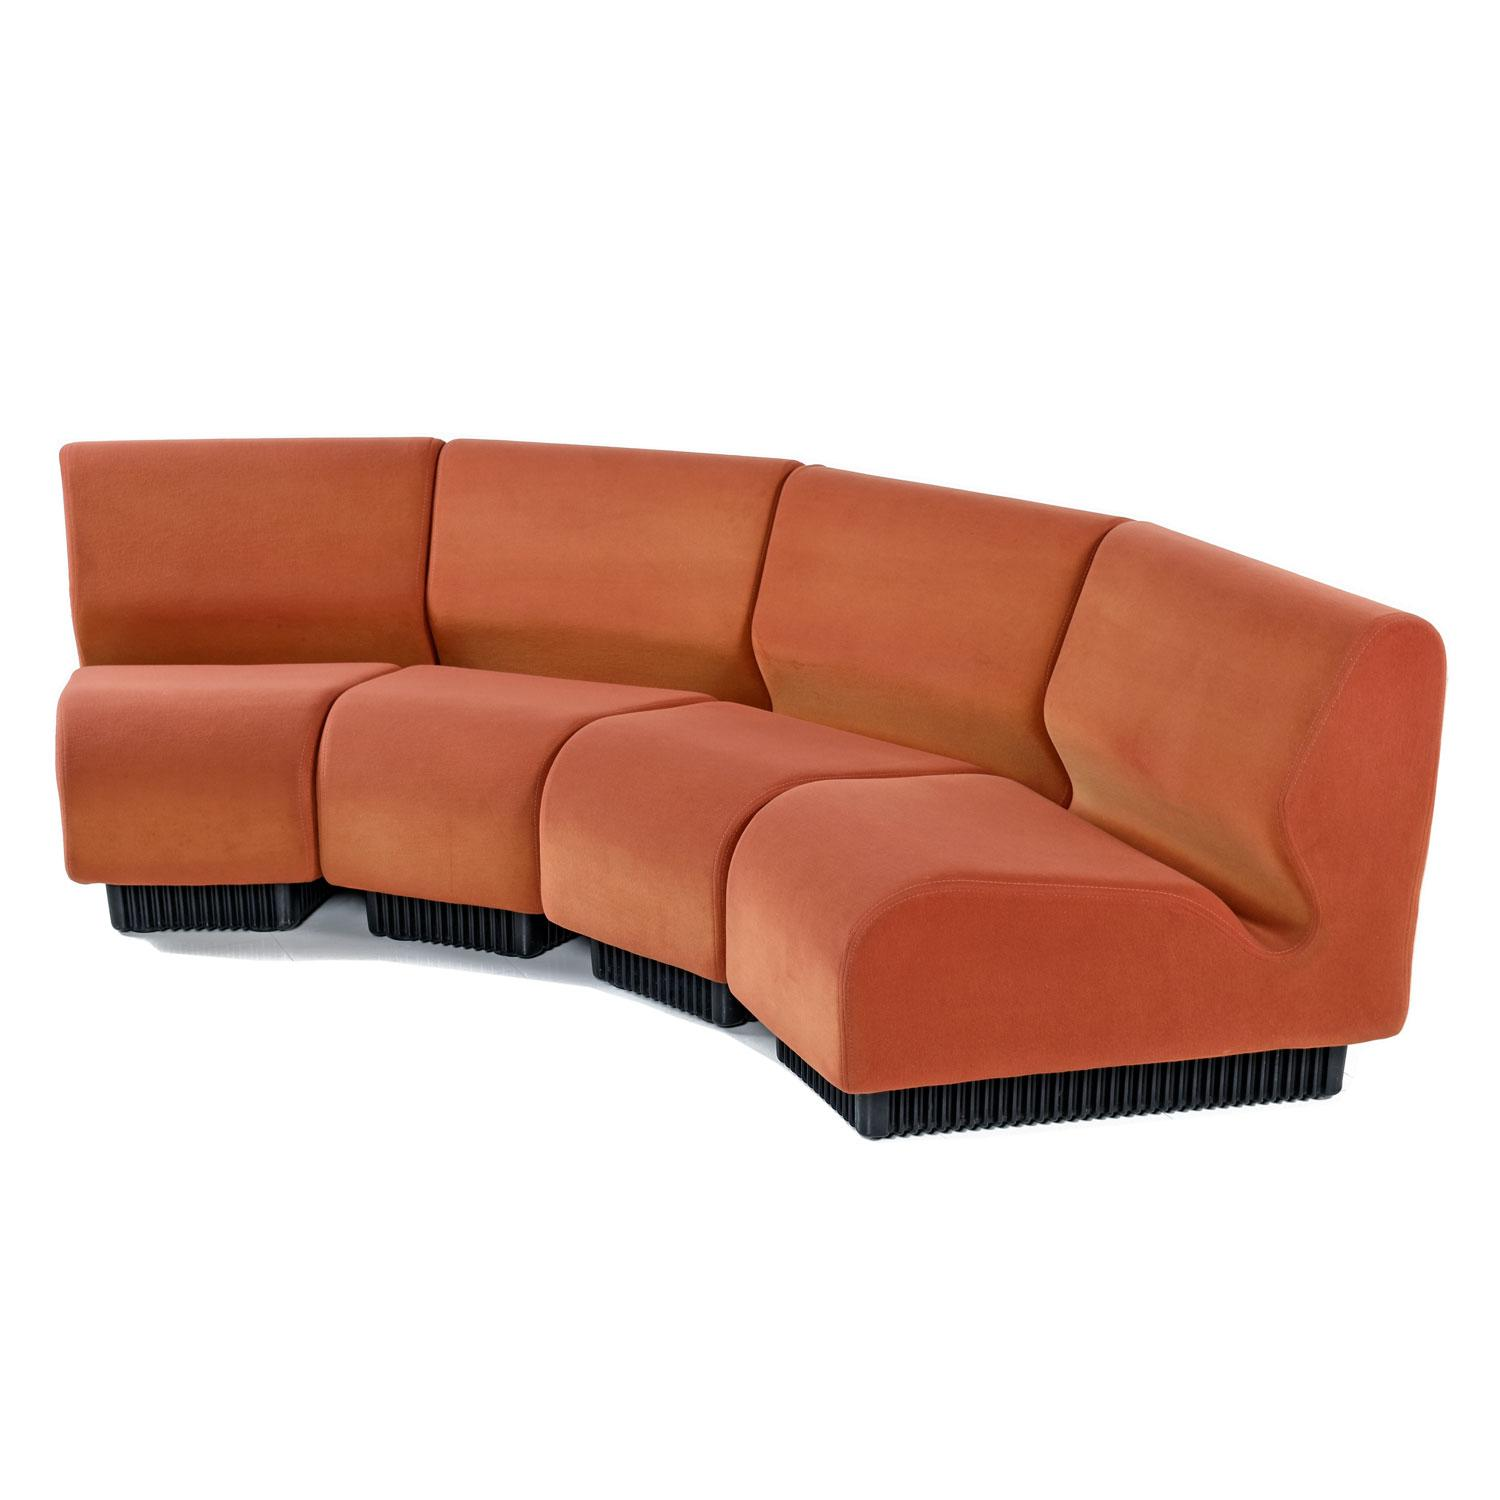 chadwick sofa apartment size sofas with chaise don modular curved wedge sectional couch for herman designed by miller this super comfortable 4 piece